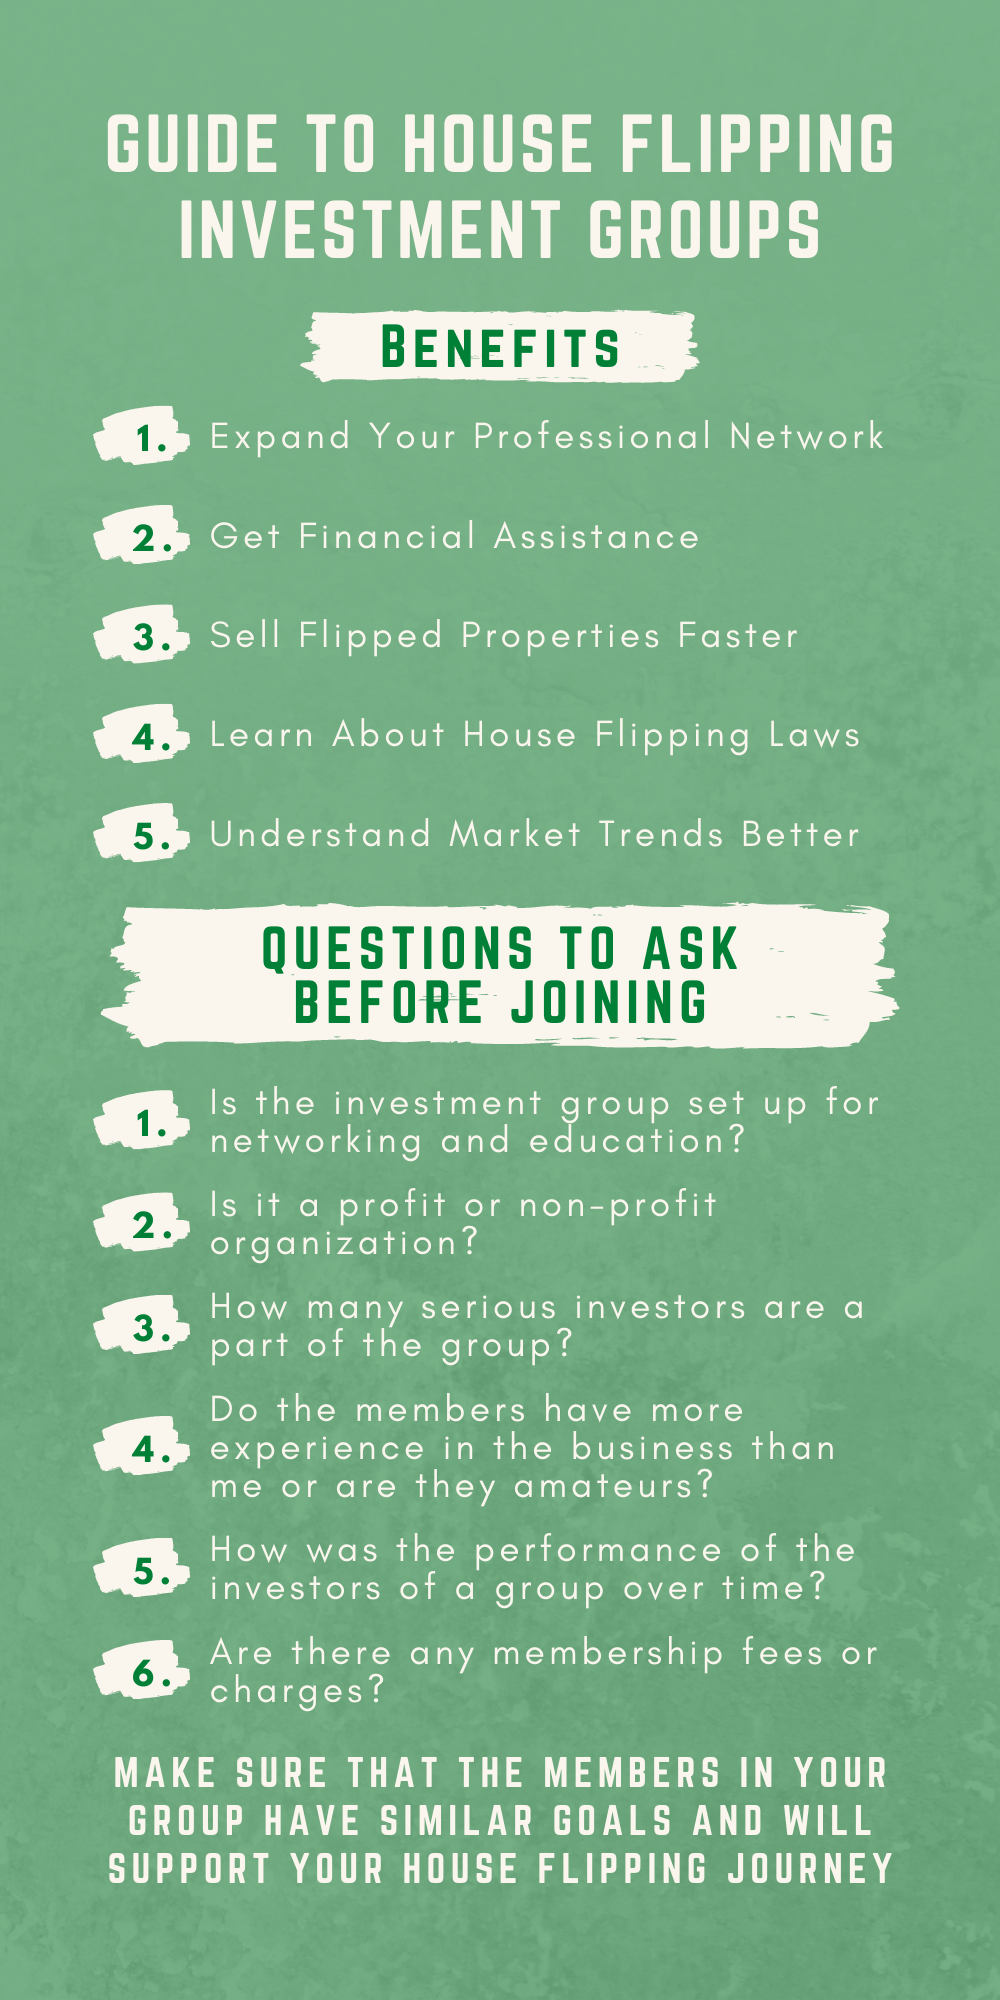 Guide to House Flipping Investment Groups